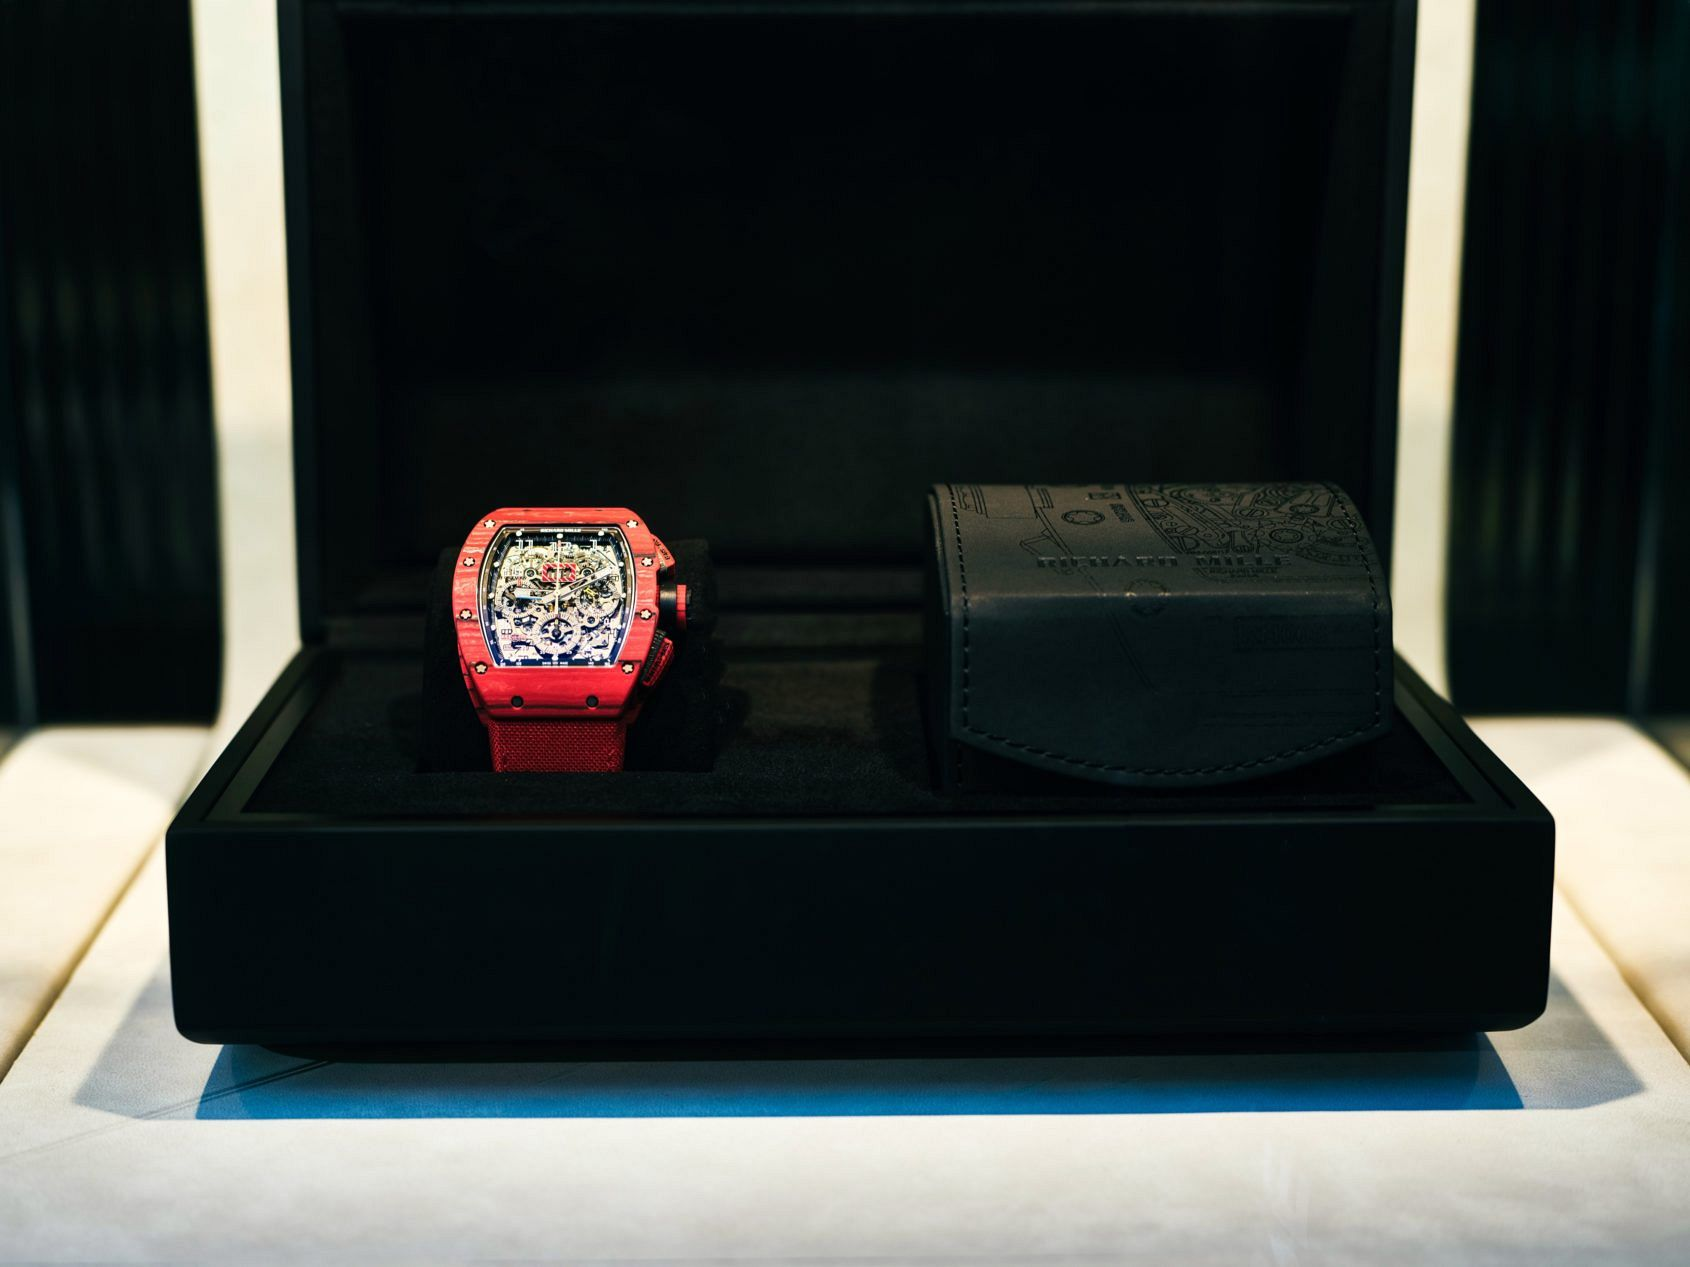 Richard Mille launches preowned retail partnerships to help people buy with greater confidence